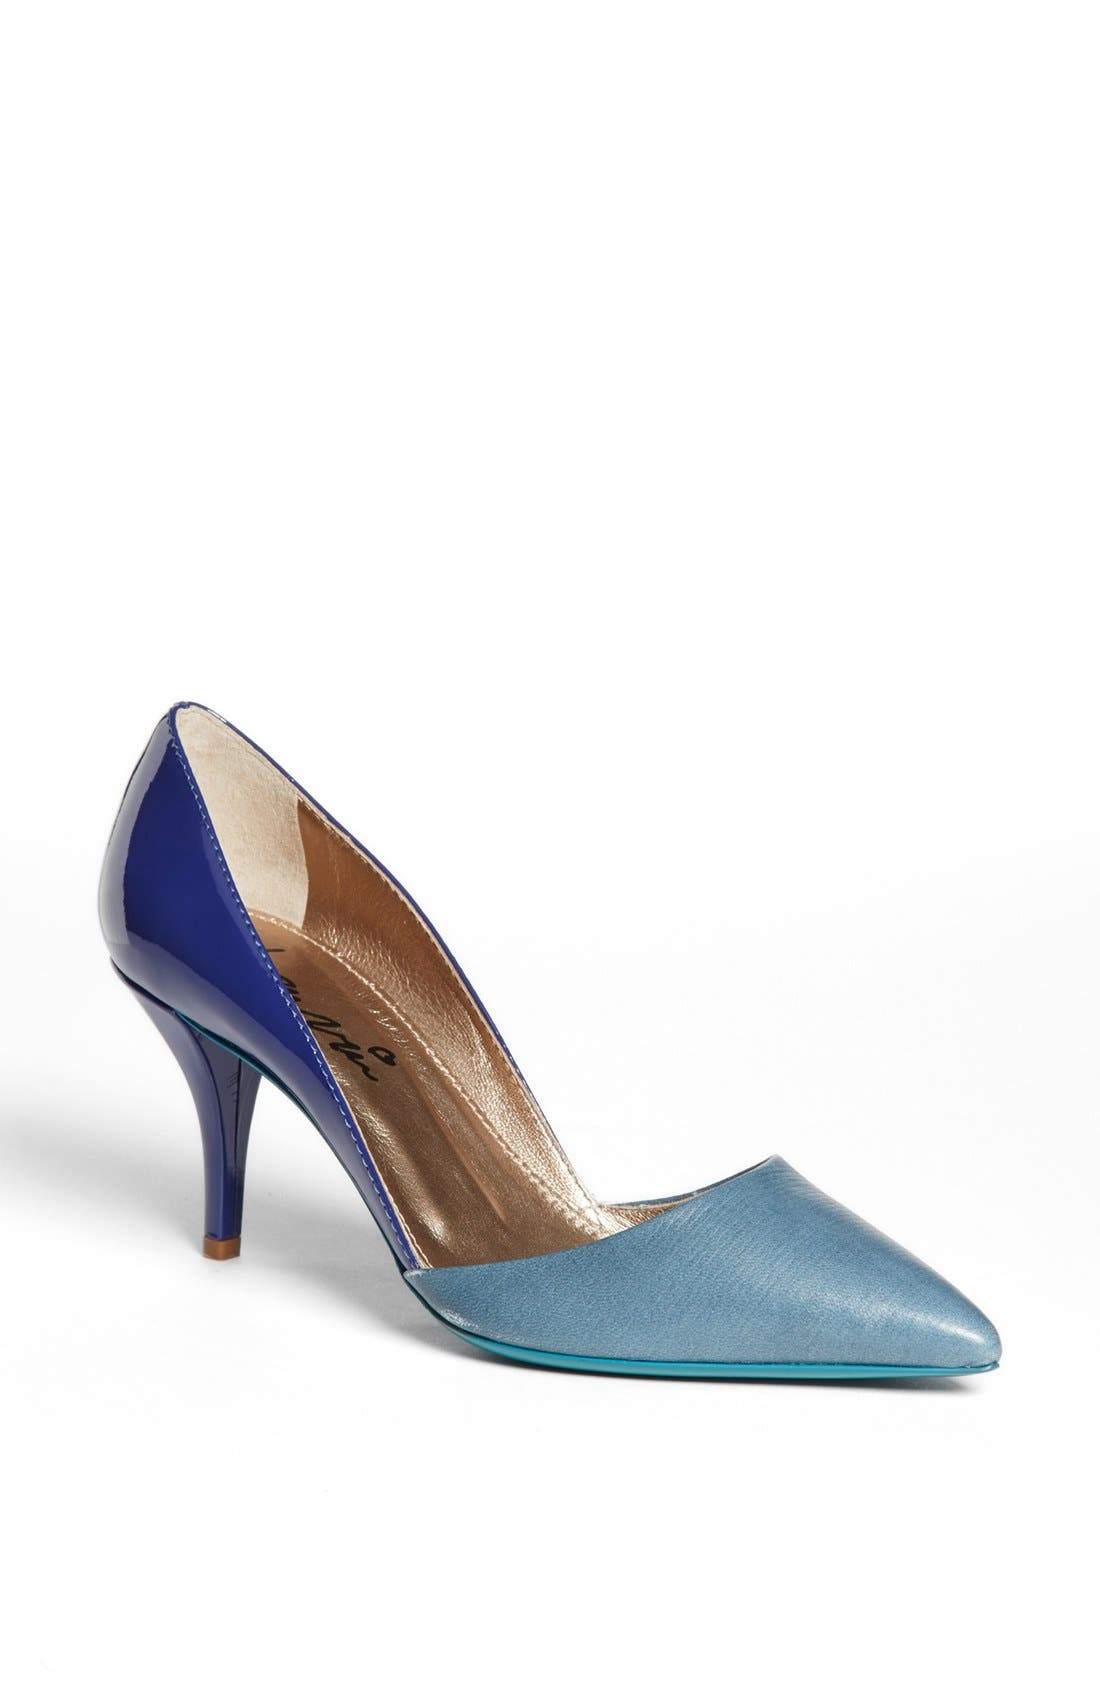 Alternate Image 1 Selected - Lanvin Bicolor Pointy Toe Pump